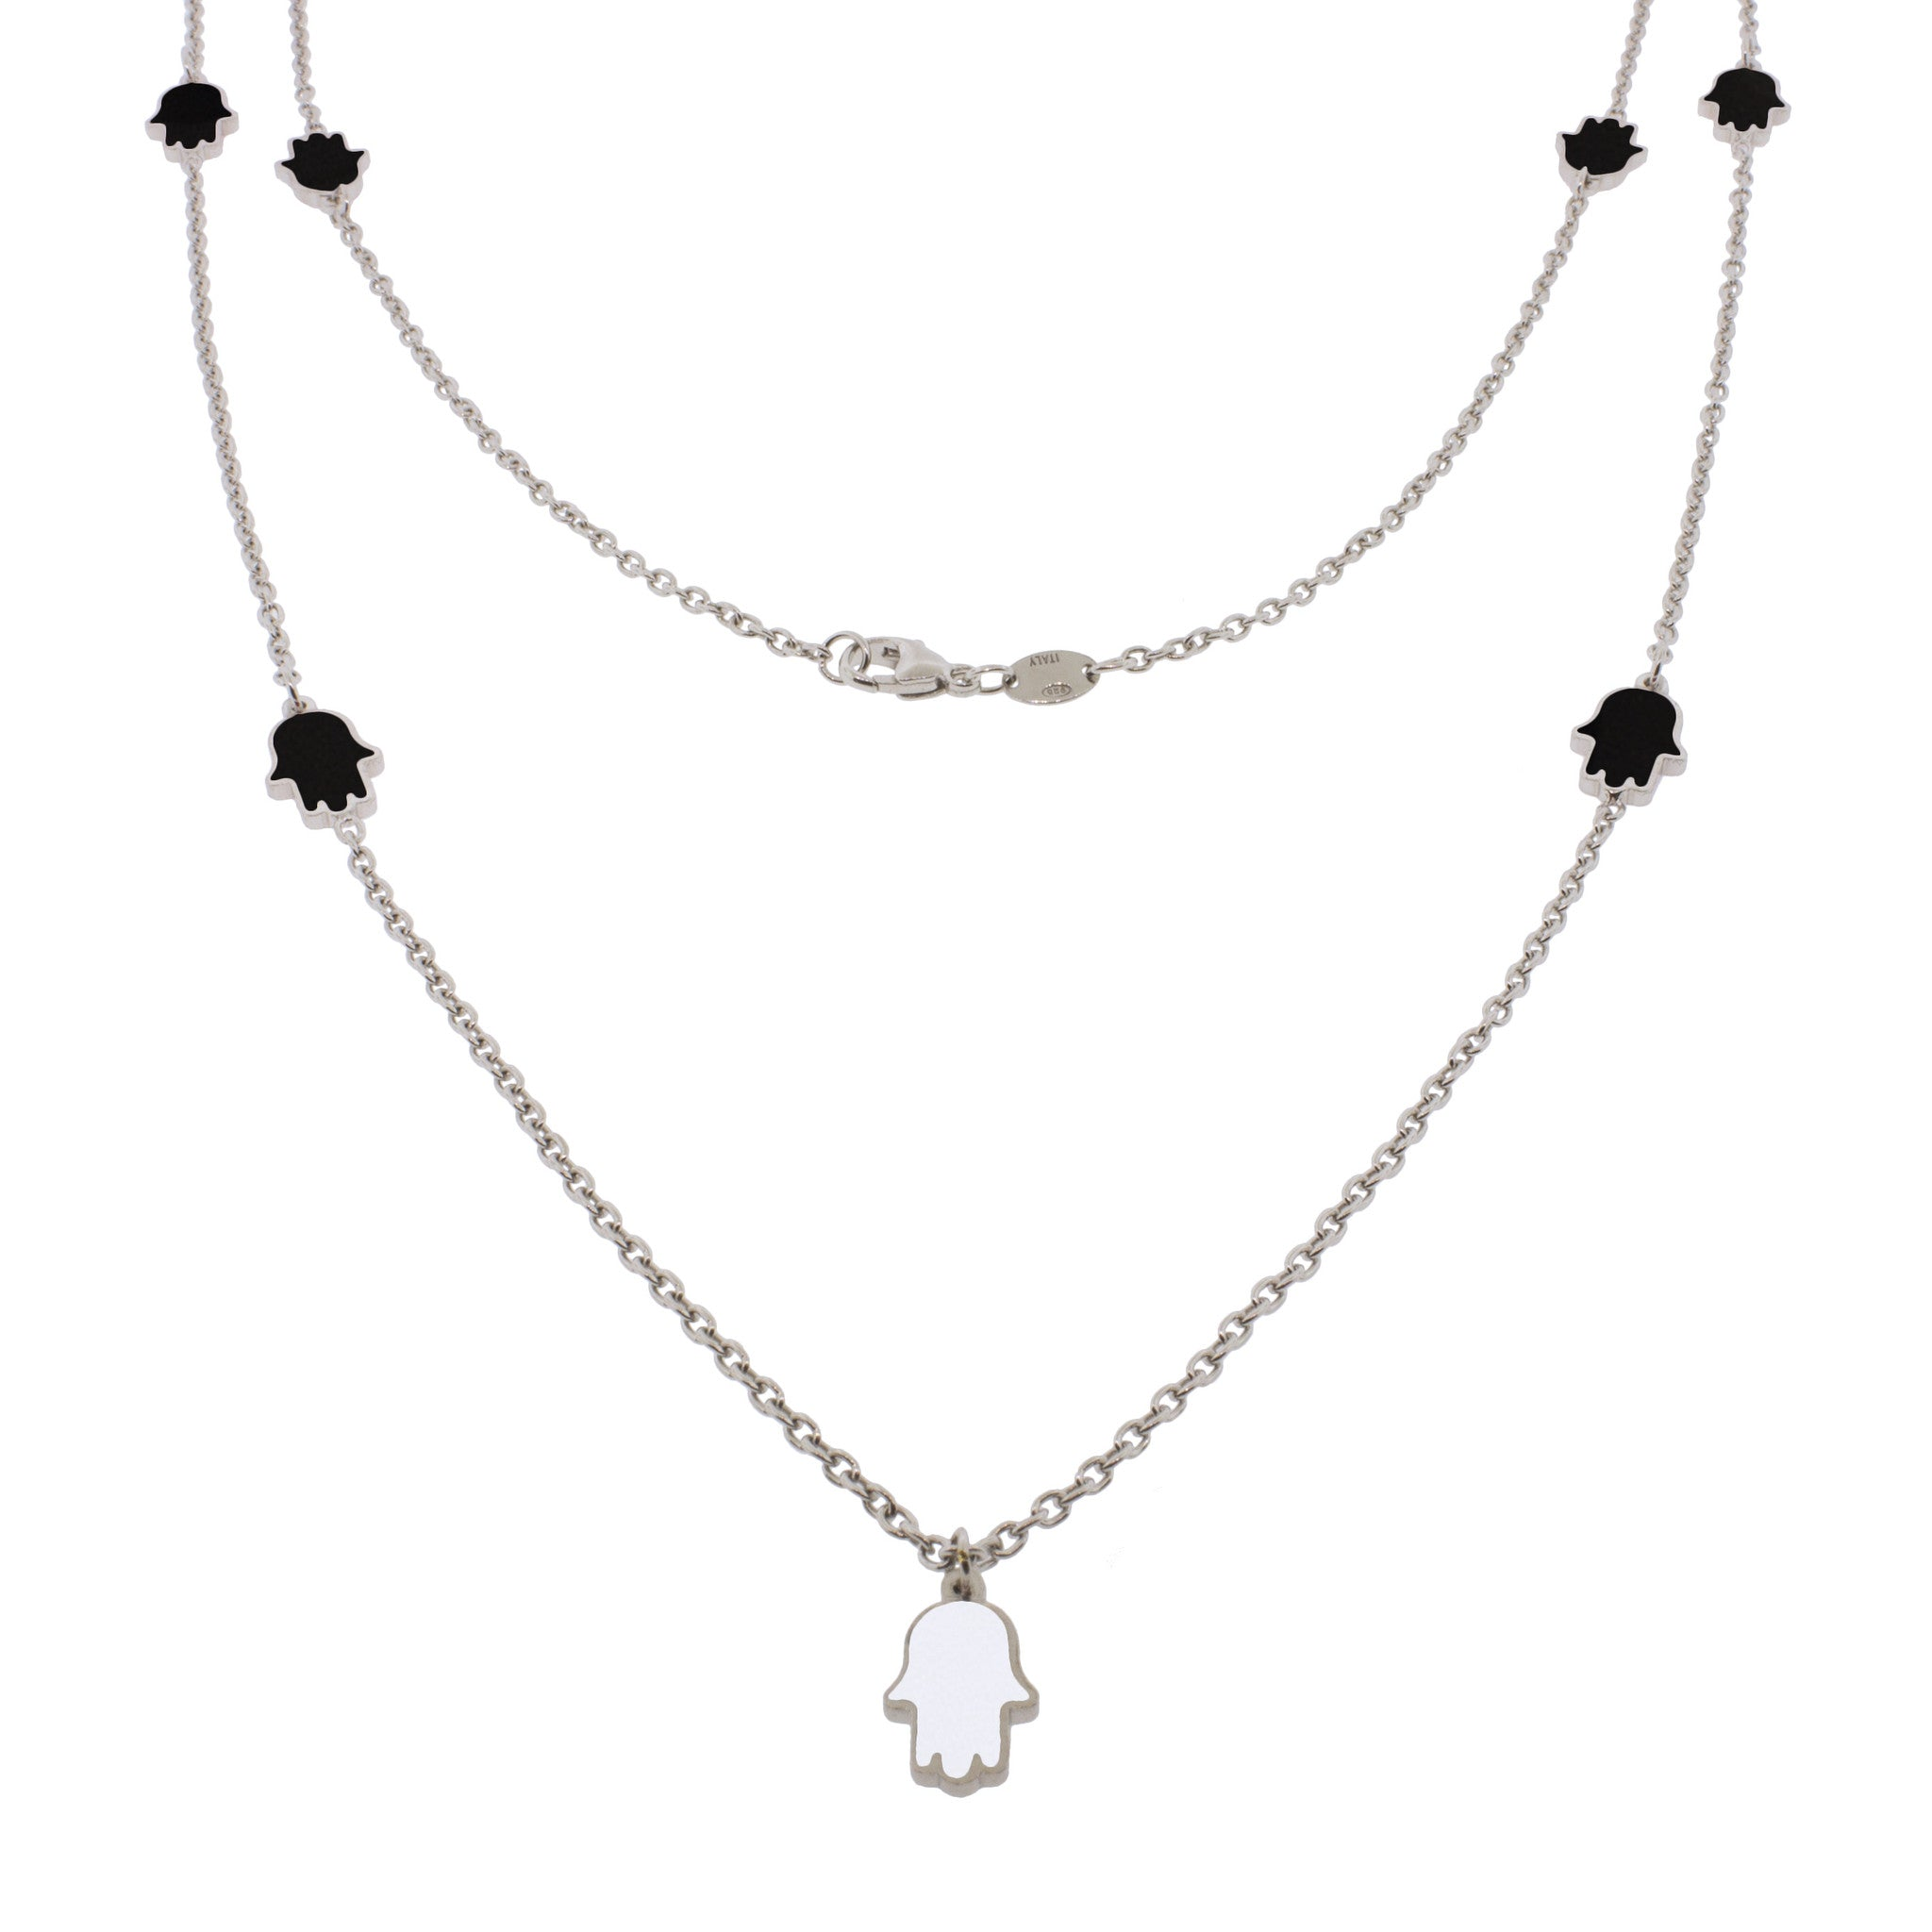 32-inch Touch of Luck Sterling Silver Necklace - Black